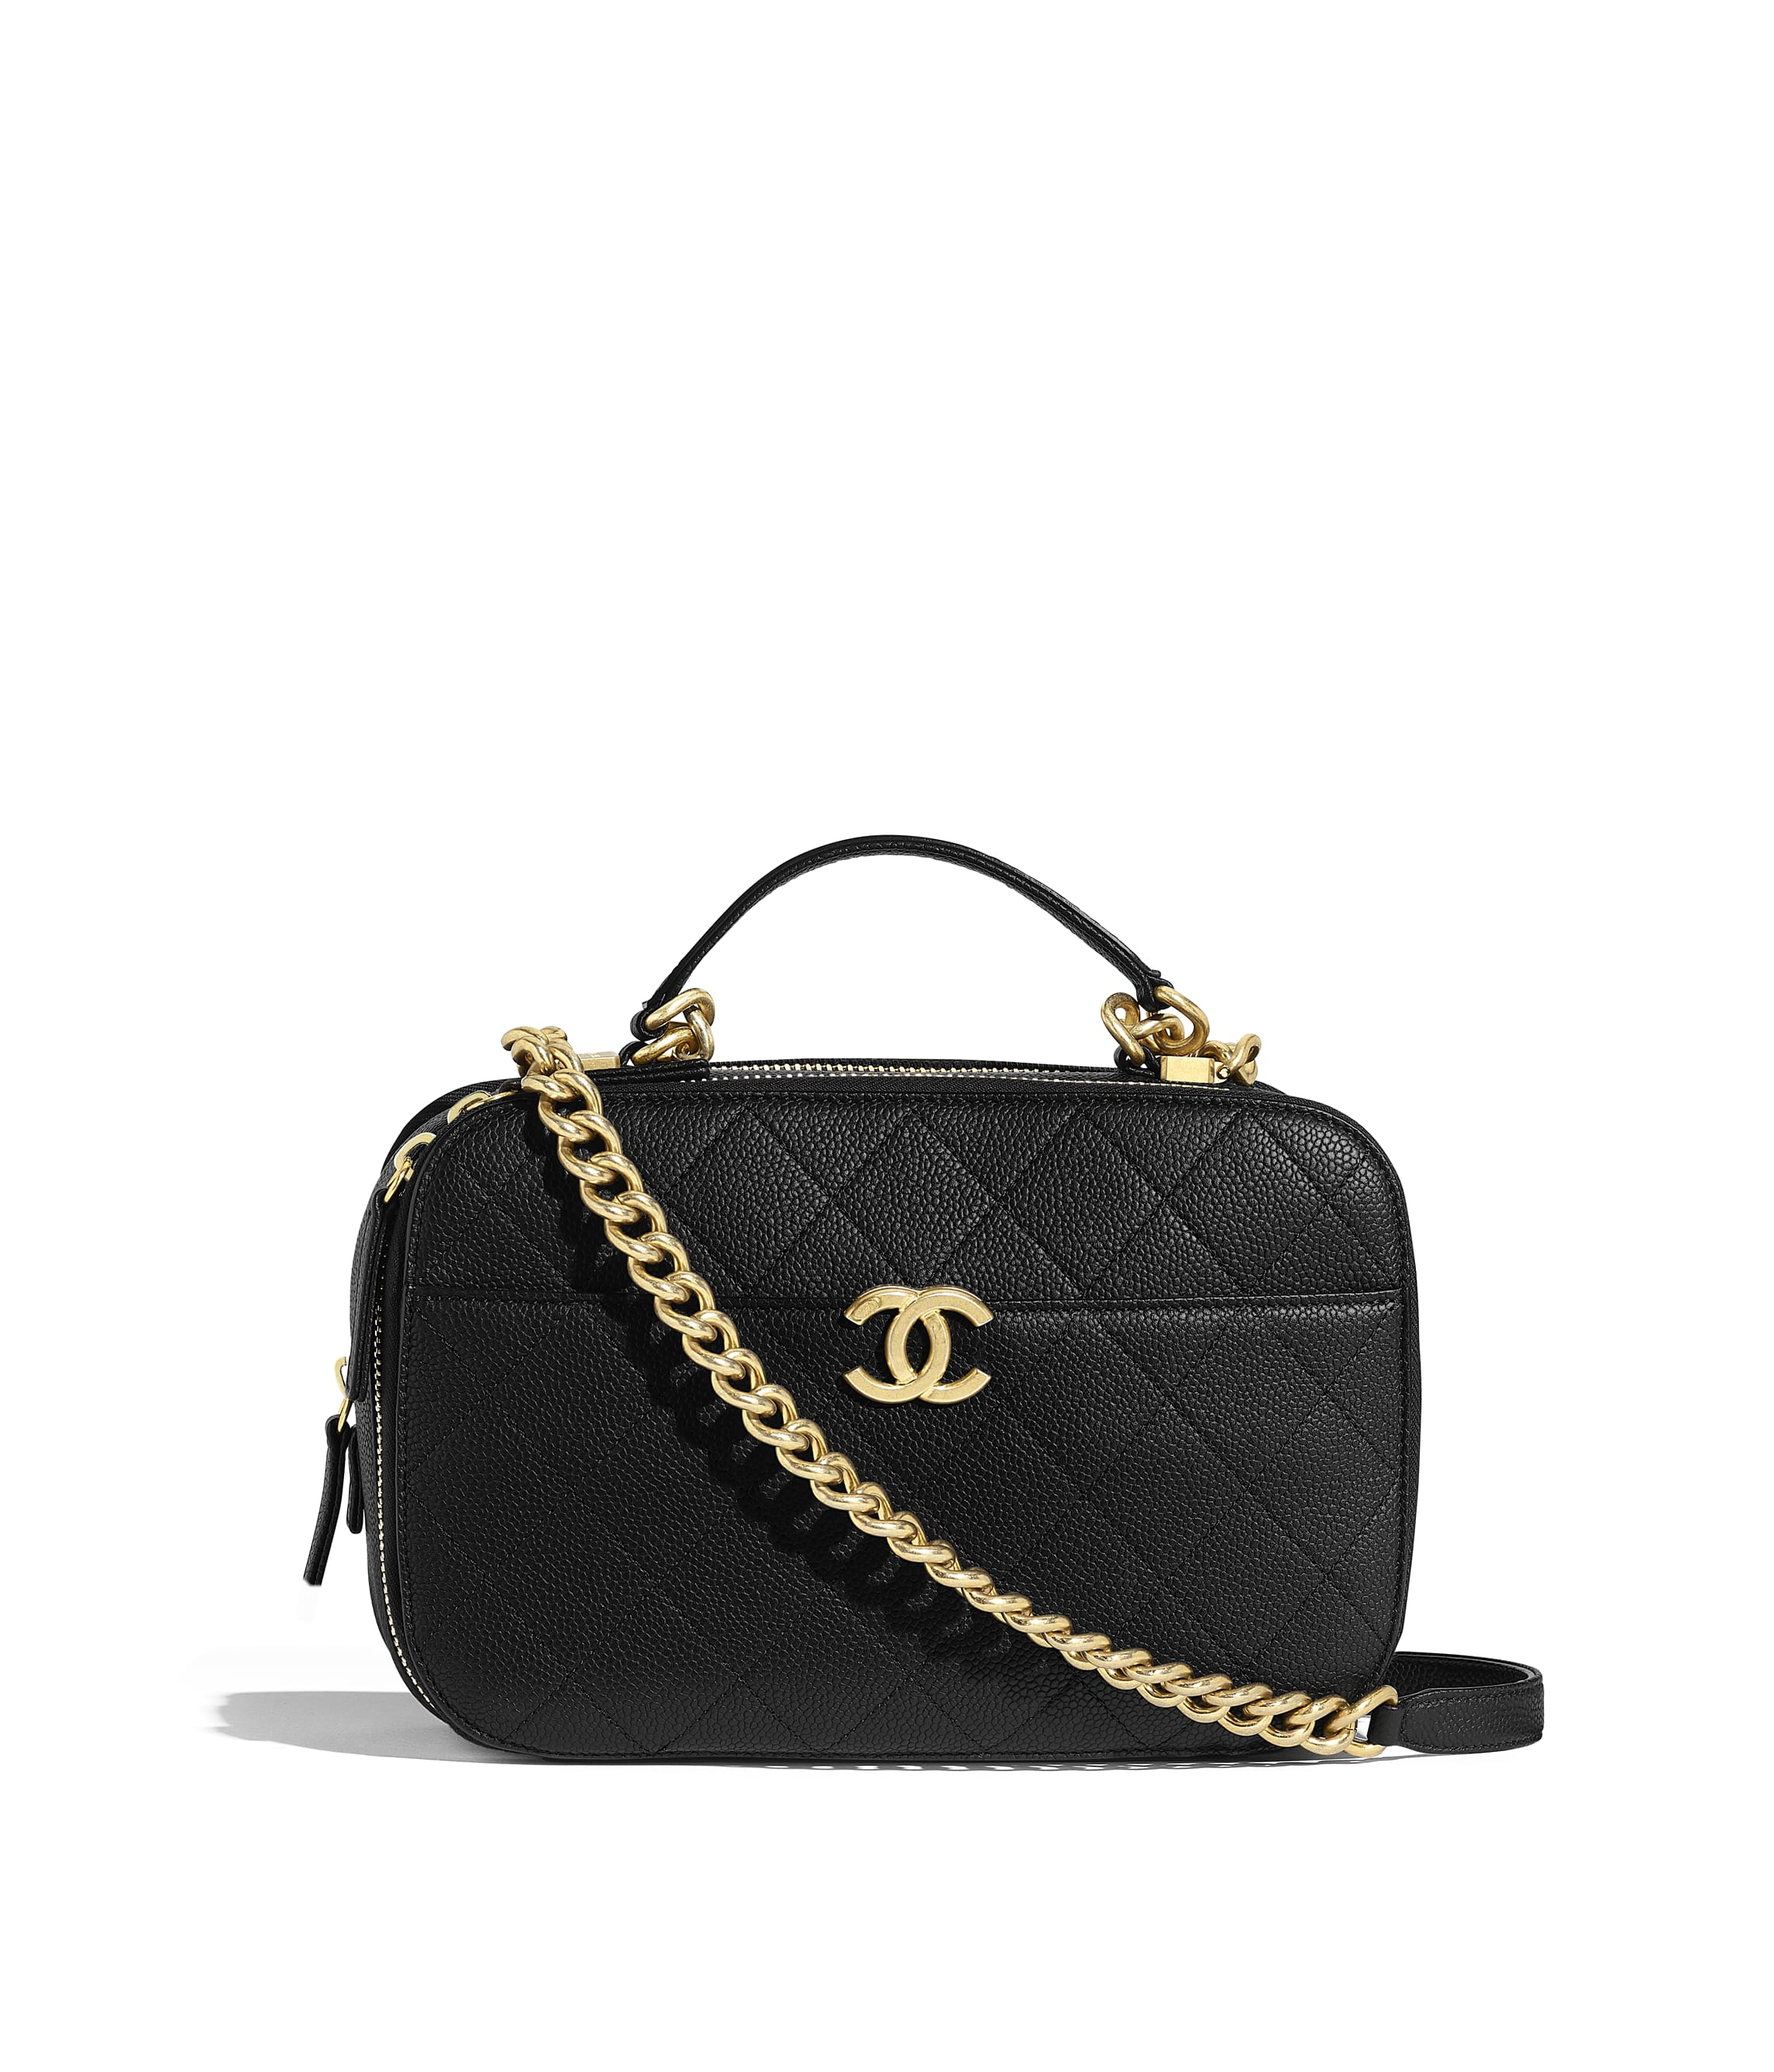 d63ae727bfb87a Camera Case, grained calfskin & gold-tone metal, black - CHANEL